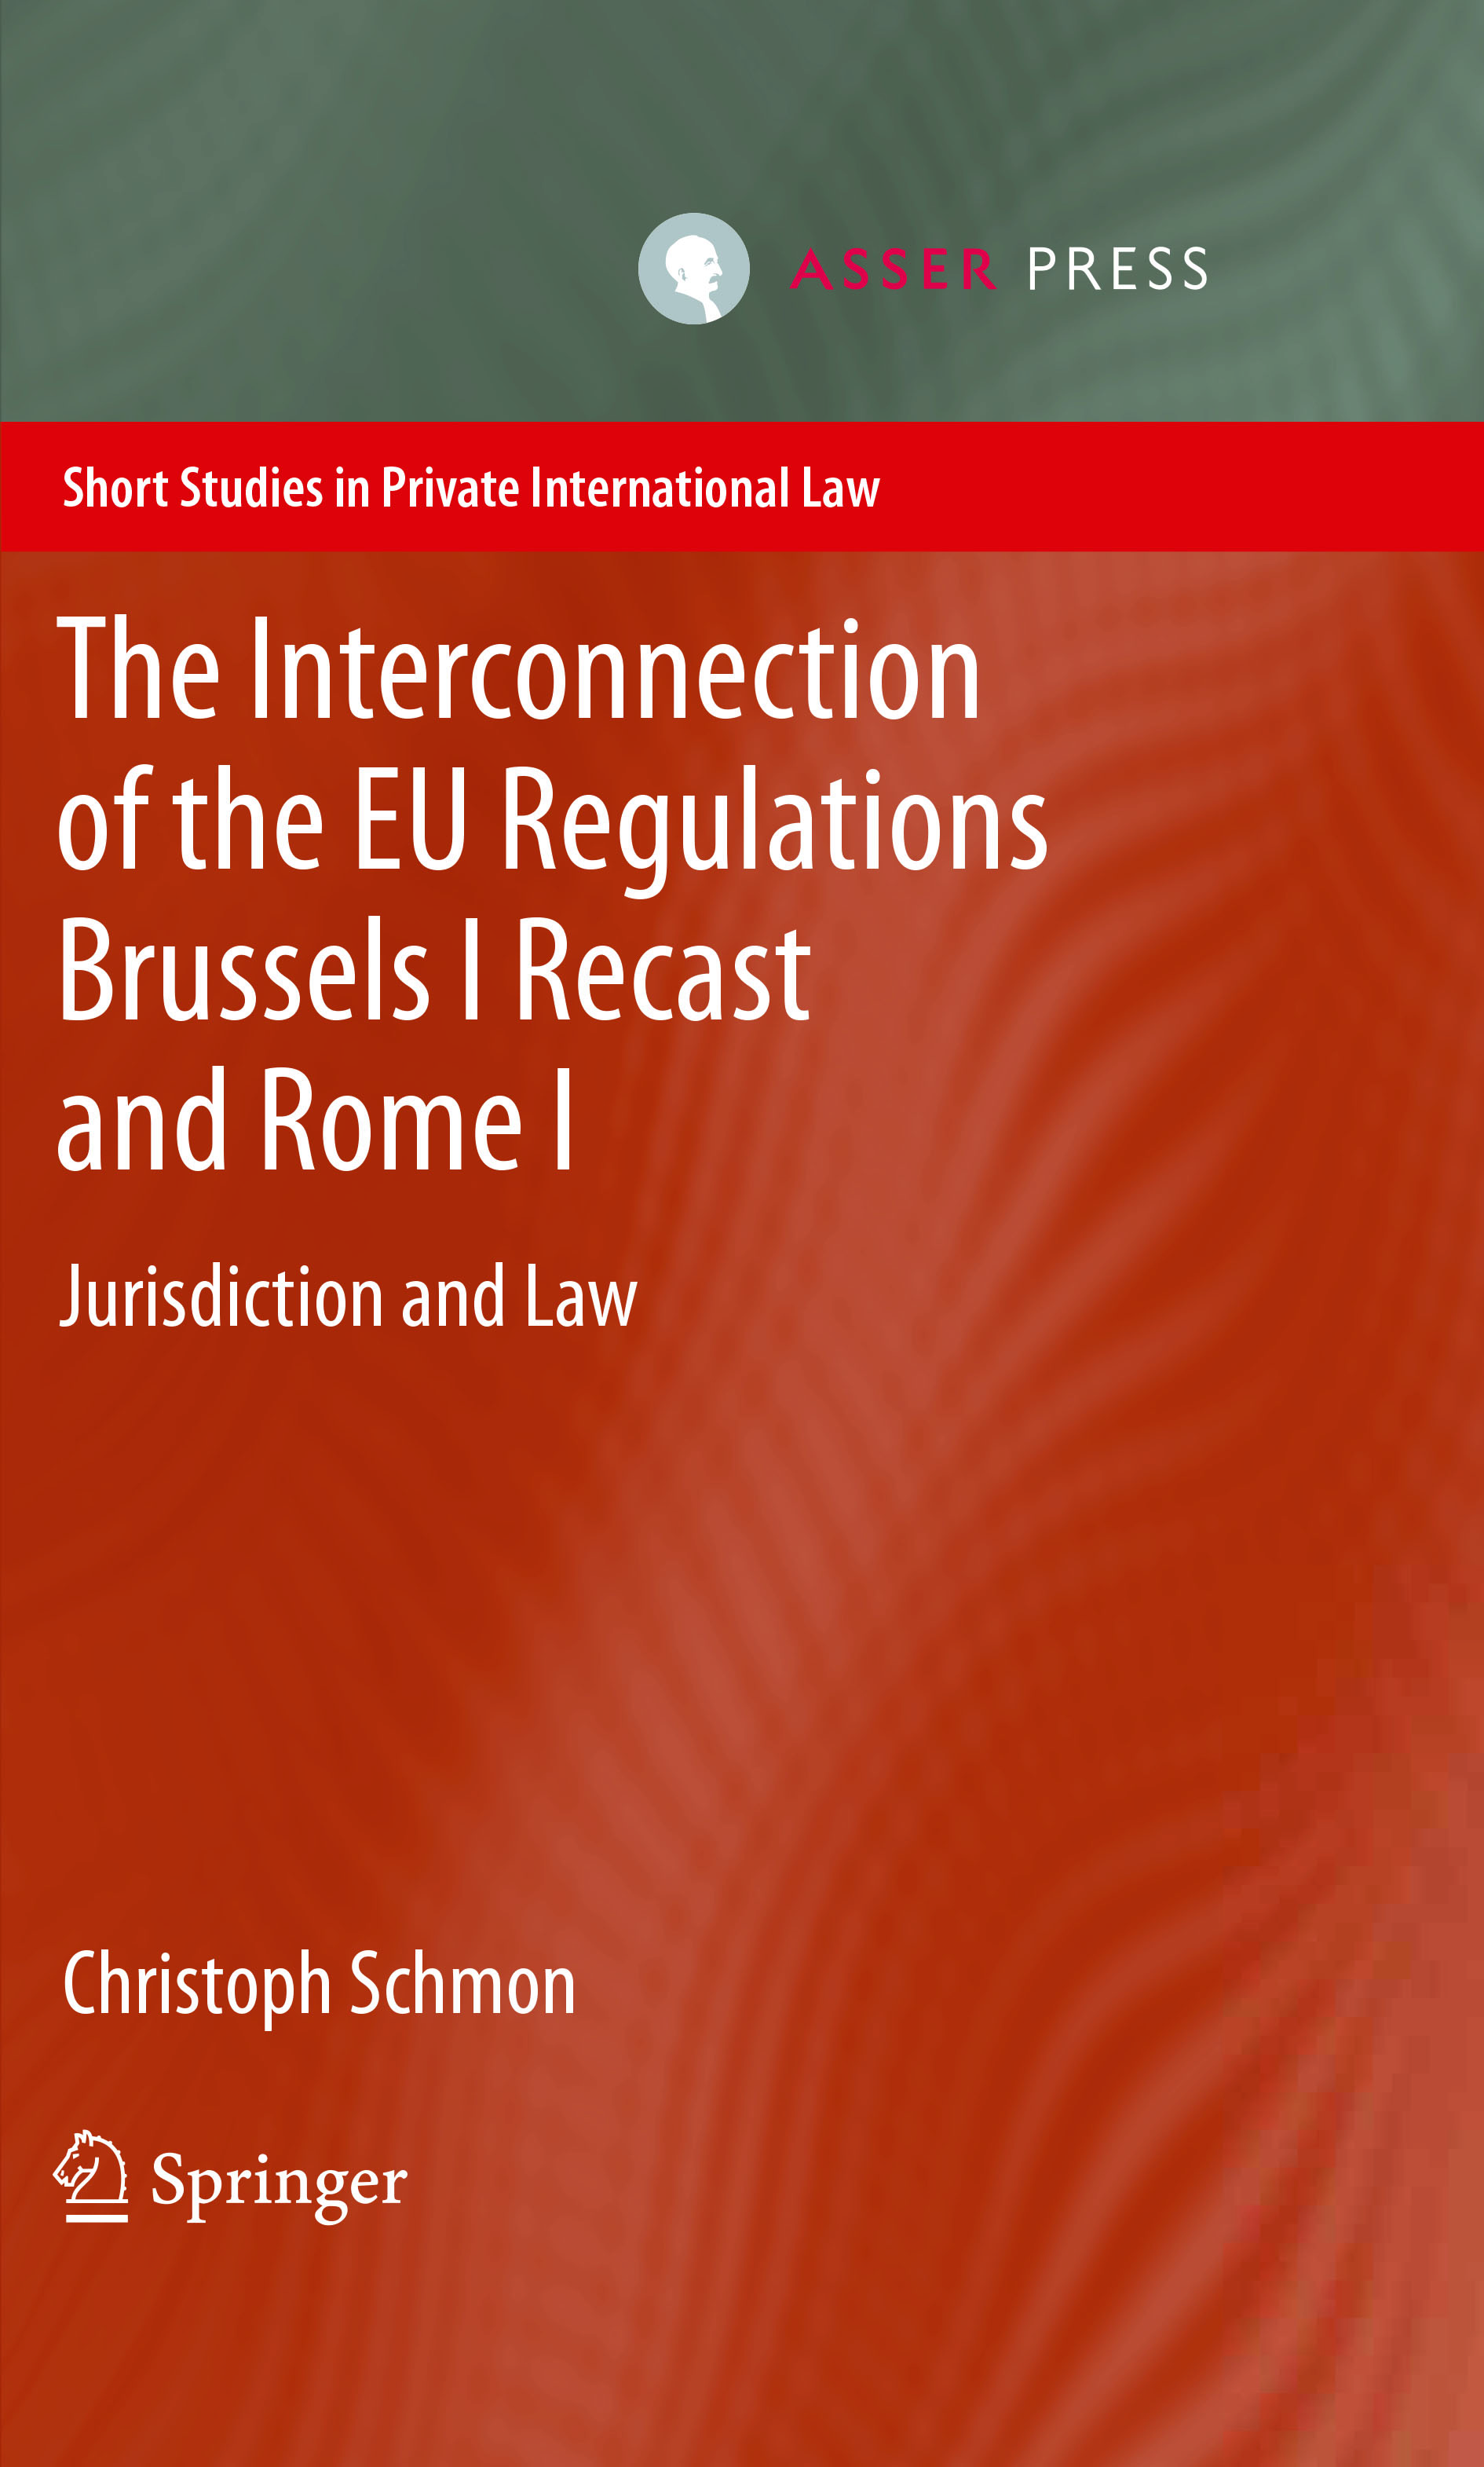 The Interconnection of the EU Regulations Brussels I Recast and Rome I - Jurisdiction and Law